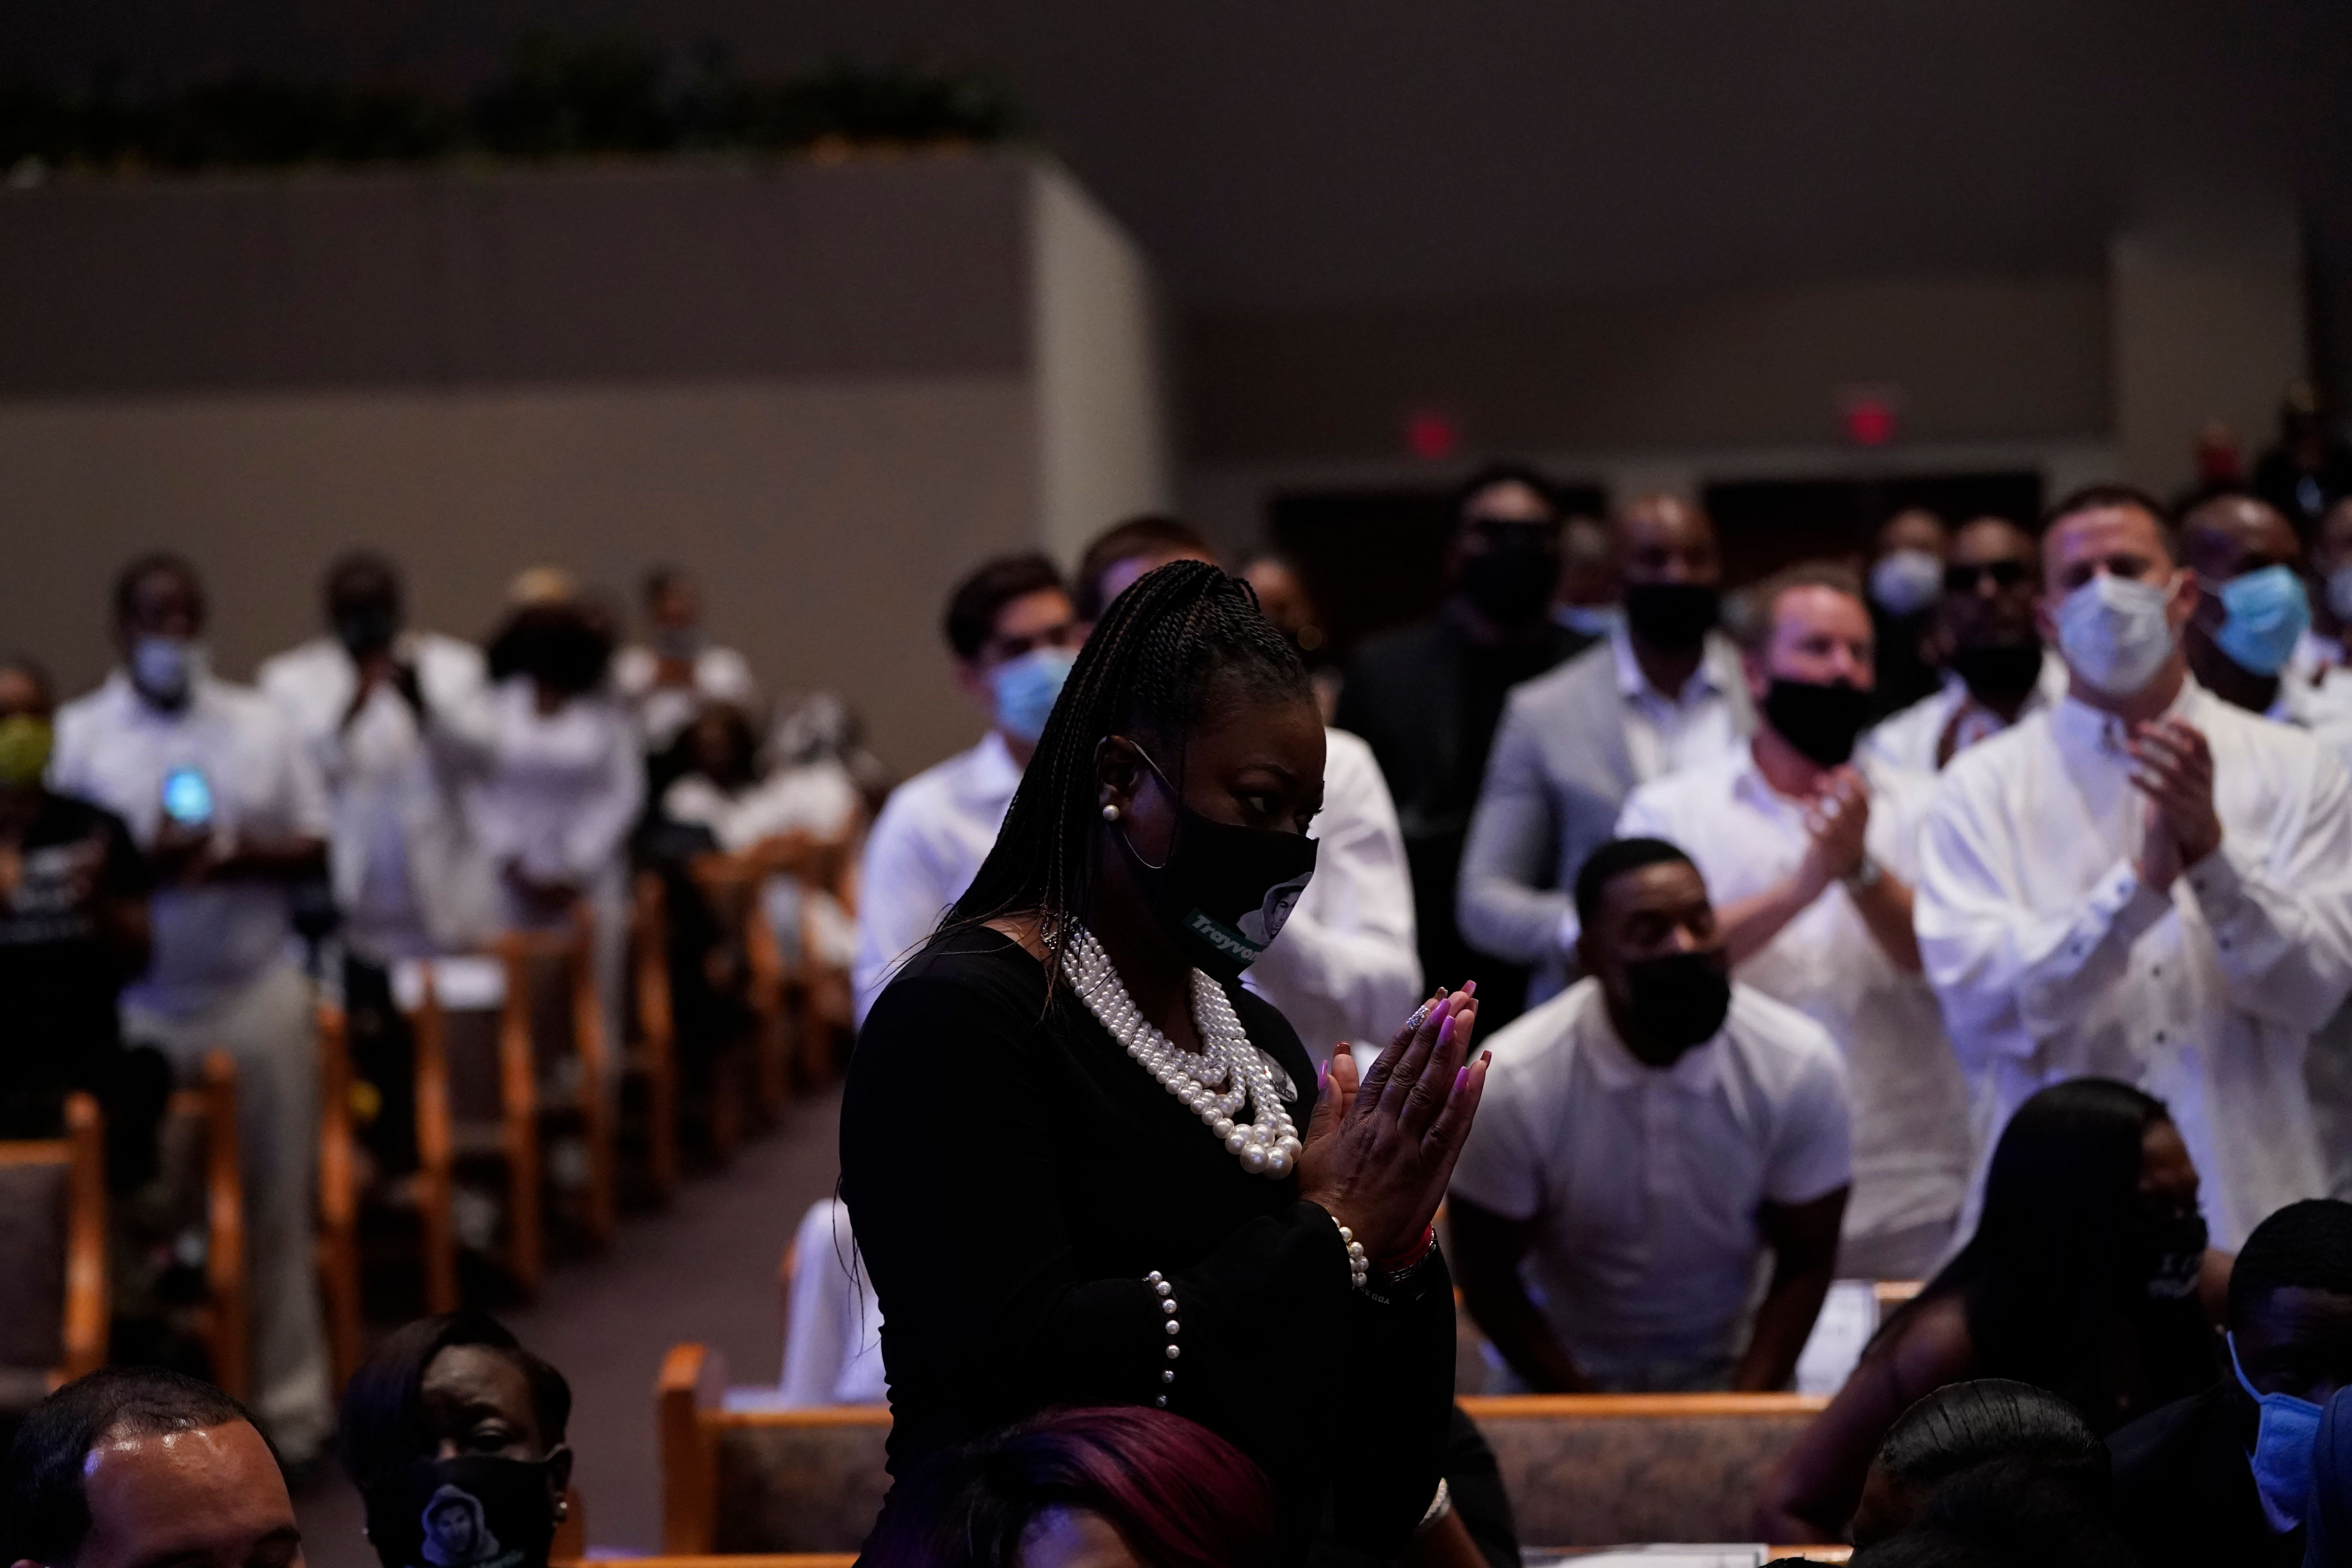 Sybrina Fulton, the mother of Trayvon Martin, stands as she is recognized during the funeral service for George Floyd at The Fountain of Praise church June 9, 2020, in Houston. -(Photo by DAVID J. PHILLIP/POOL/AFP via Getty Images)